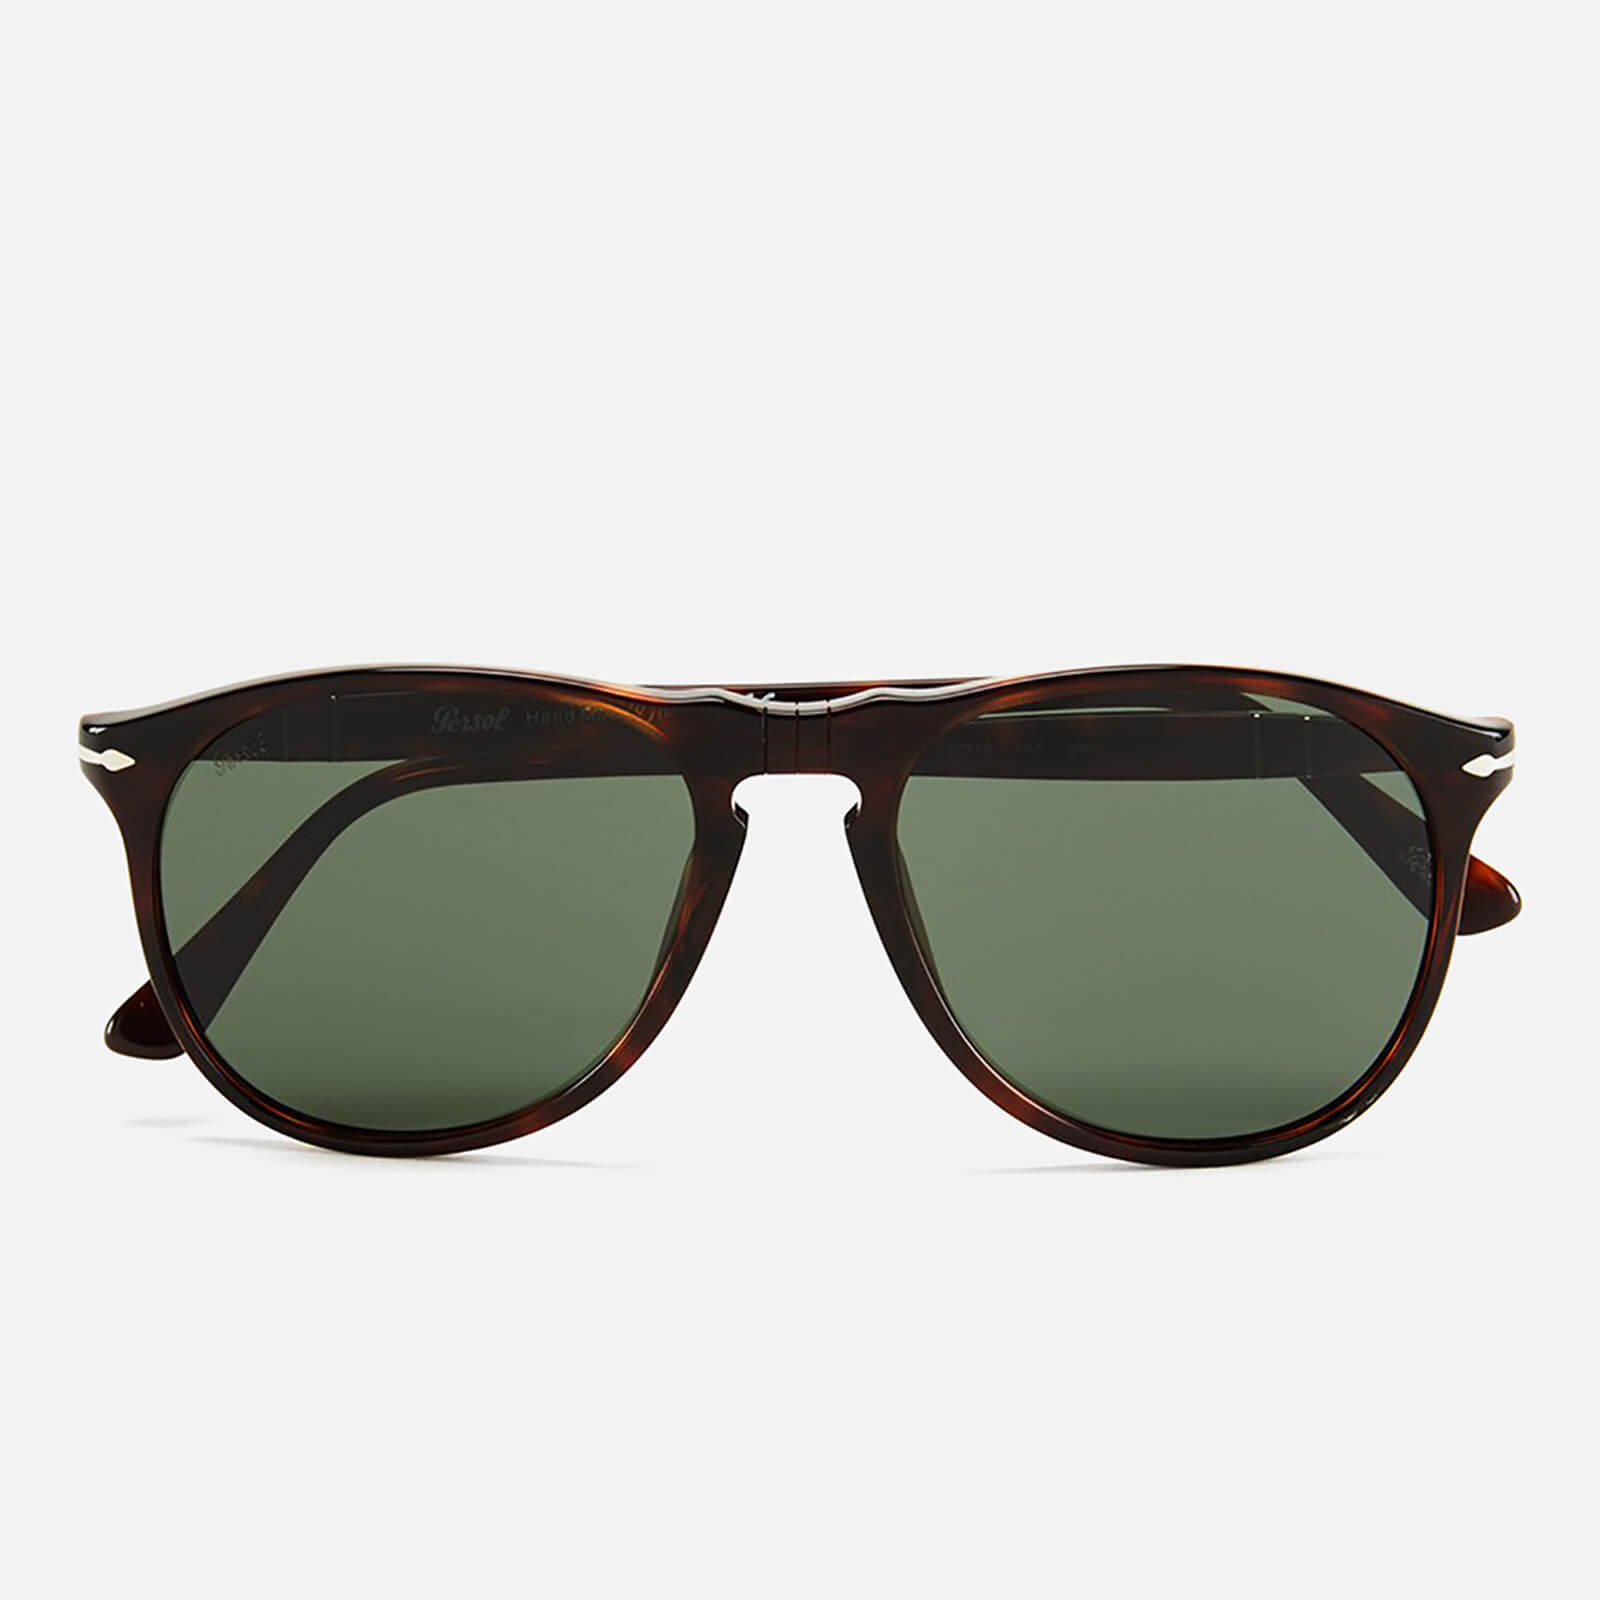 158a62bab3a Persol Thin D-Frame Men s Sunglasses - Havana - Free UK Delivery over £50